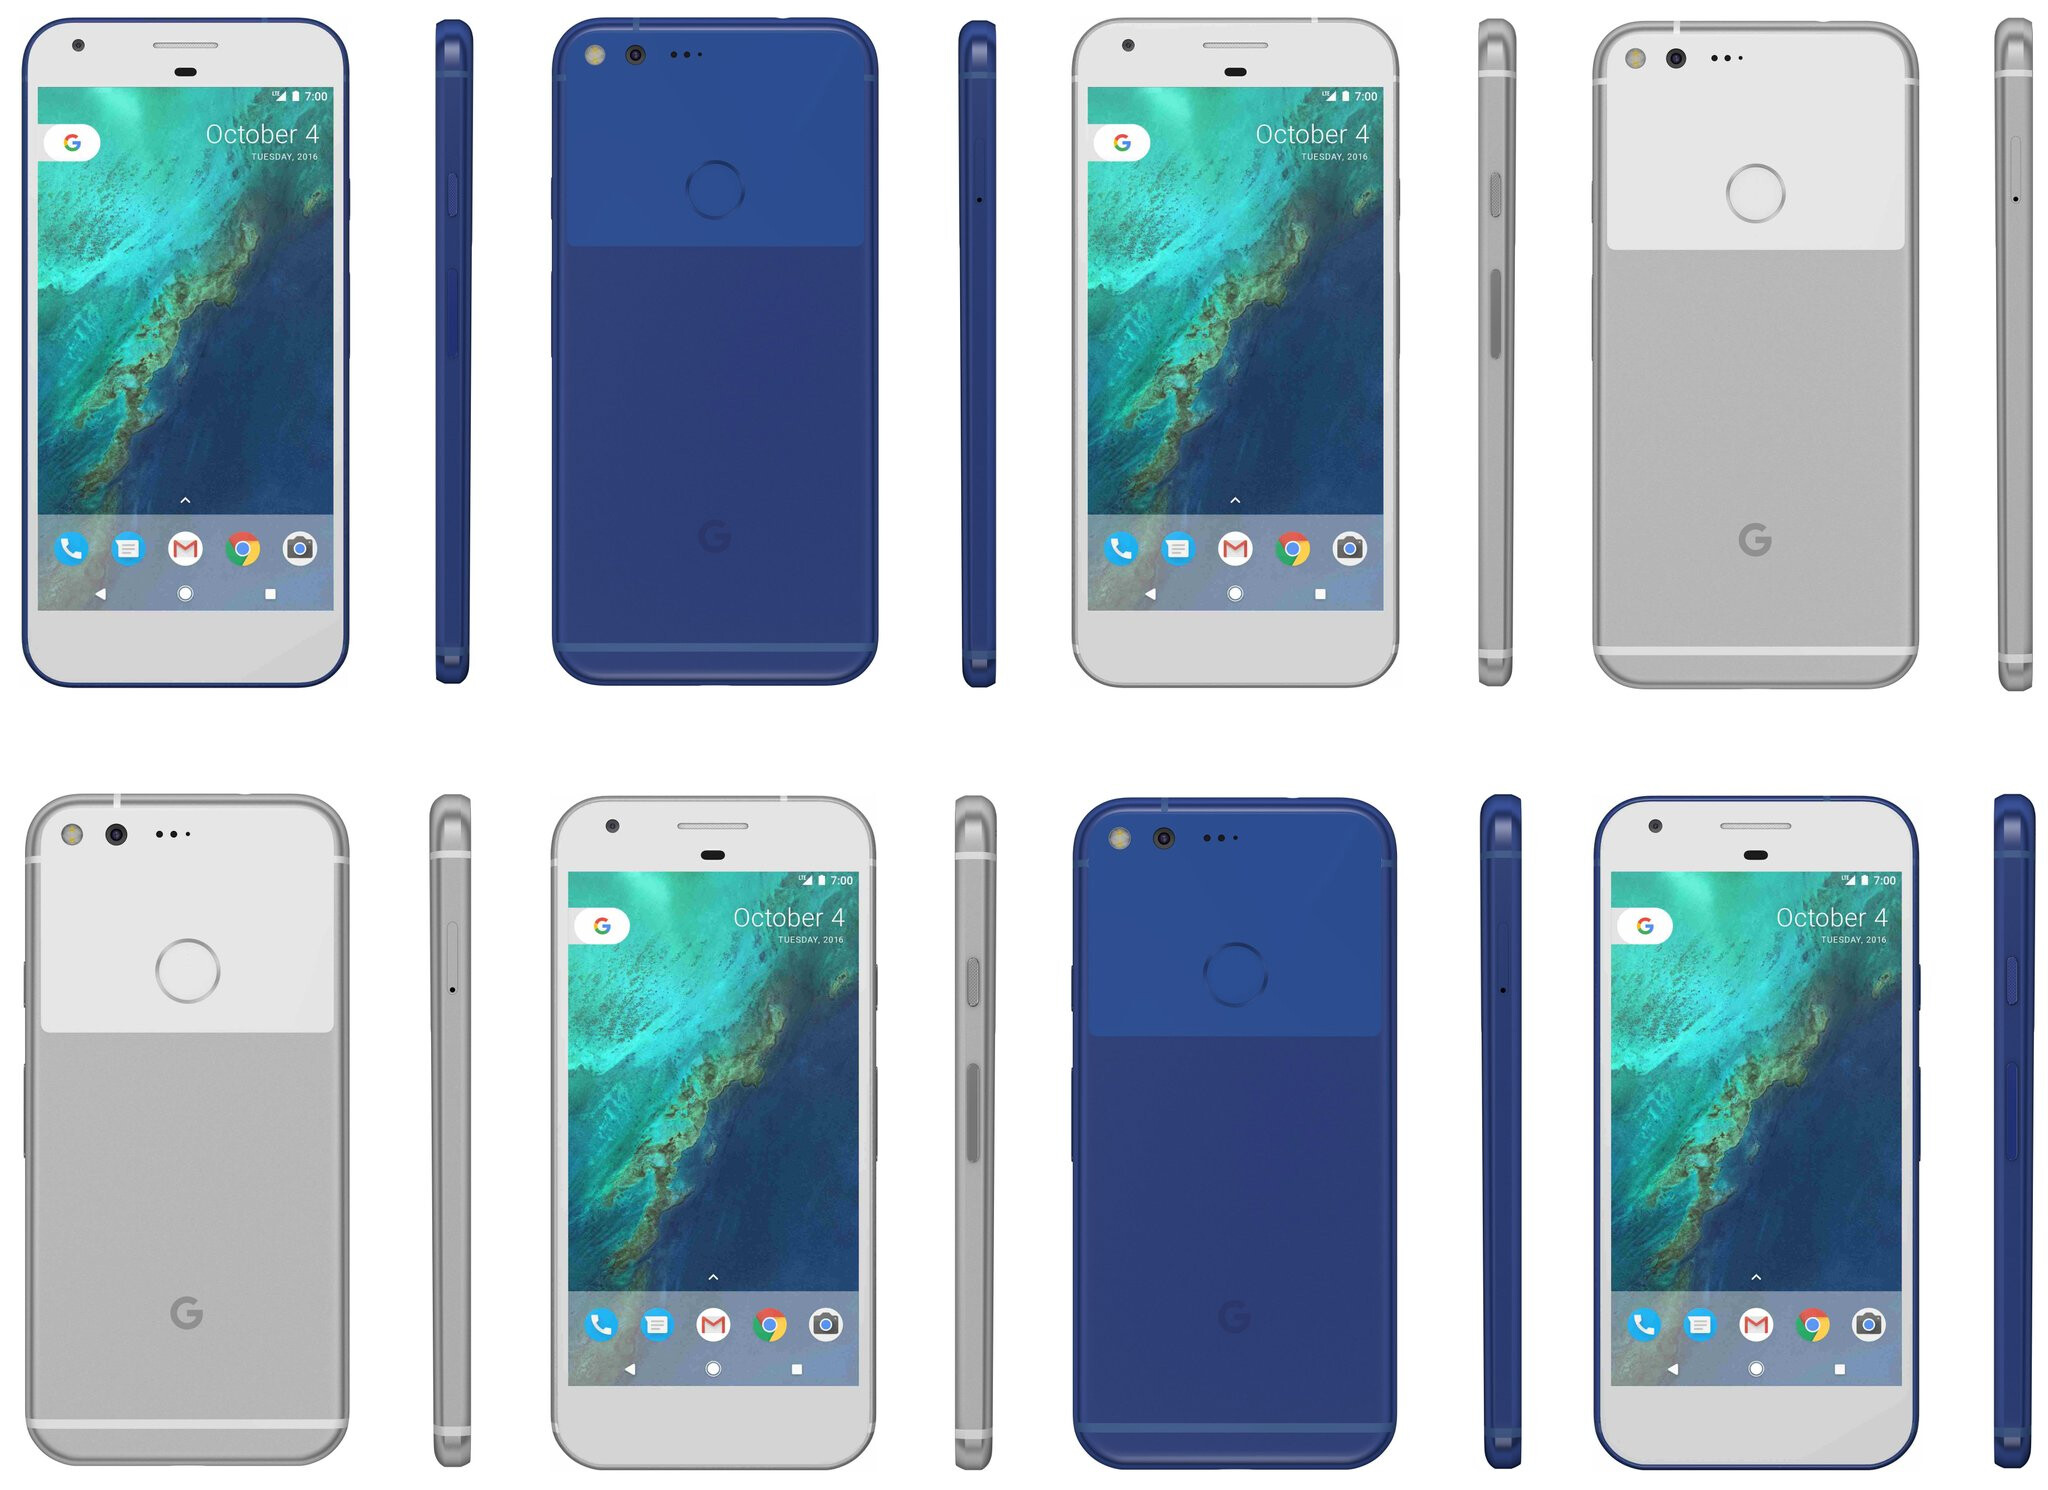 google pixel and pixel xl appear in an awesome blue color that might